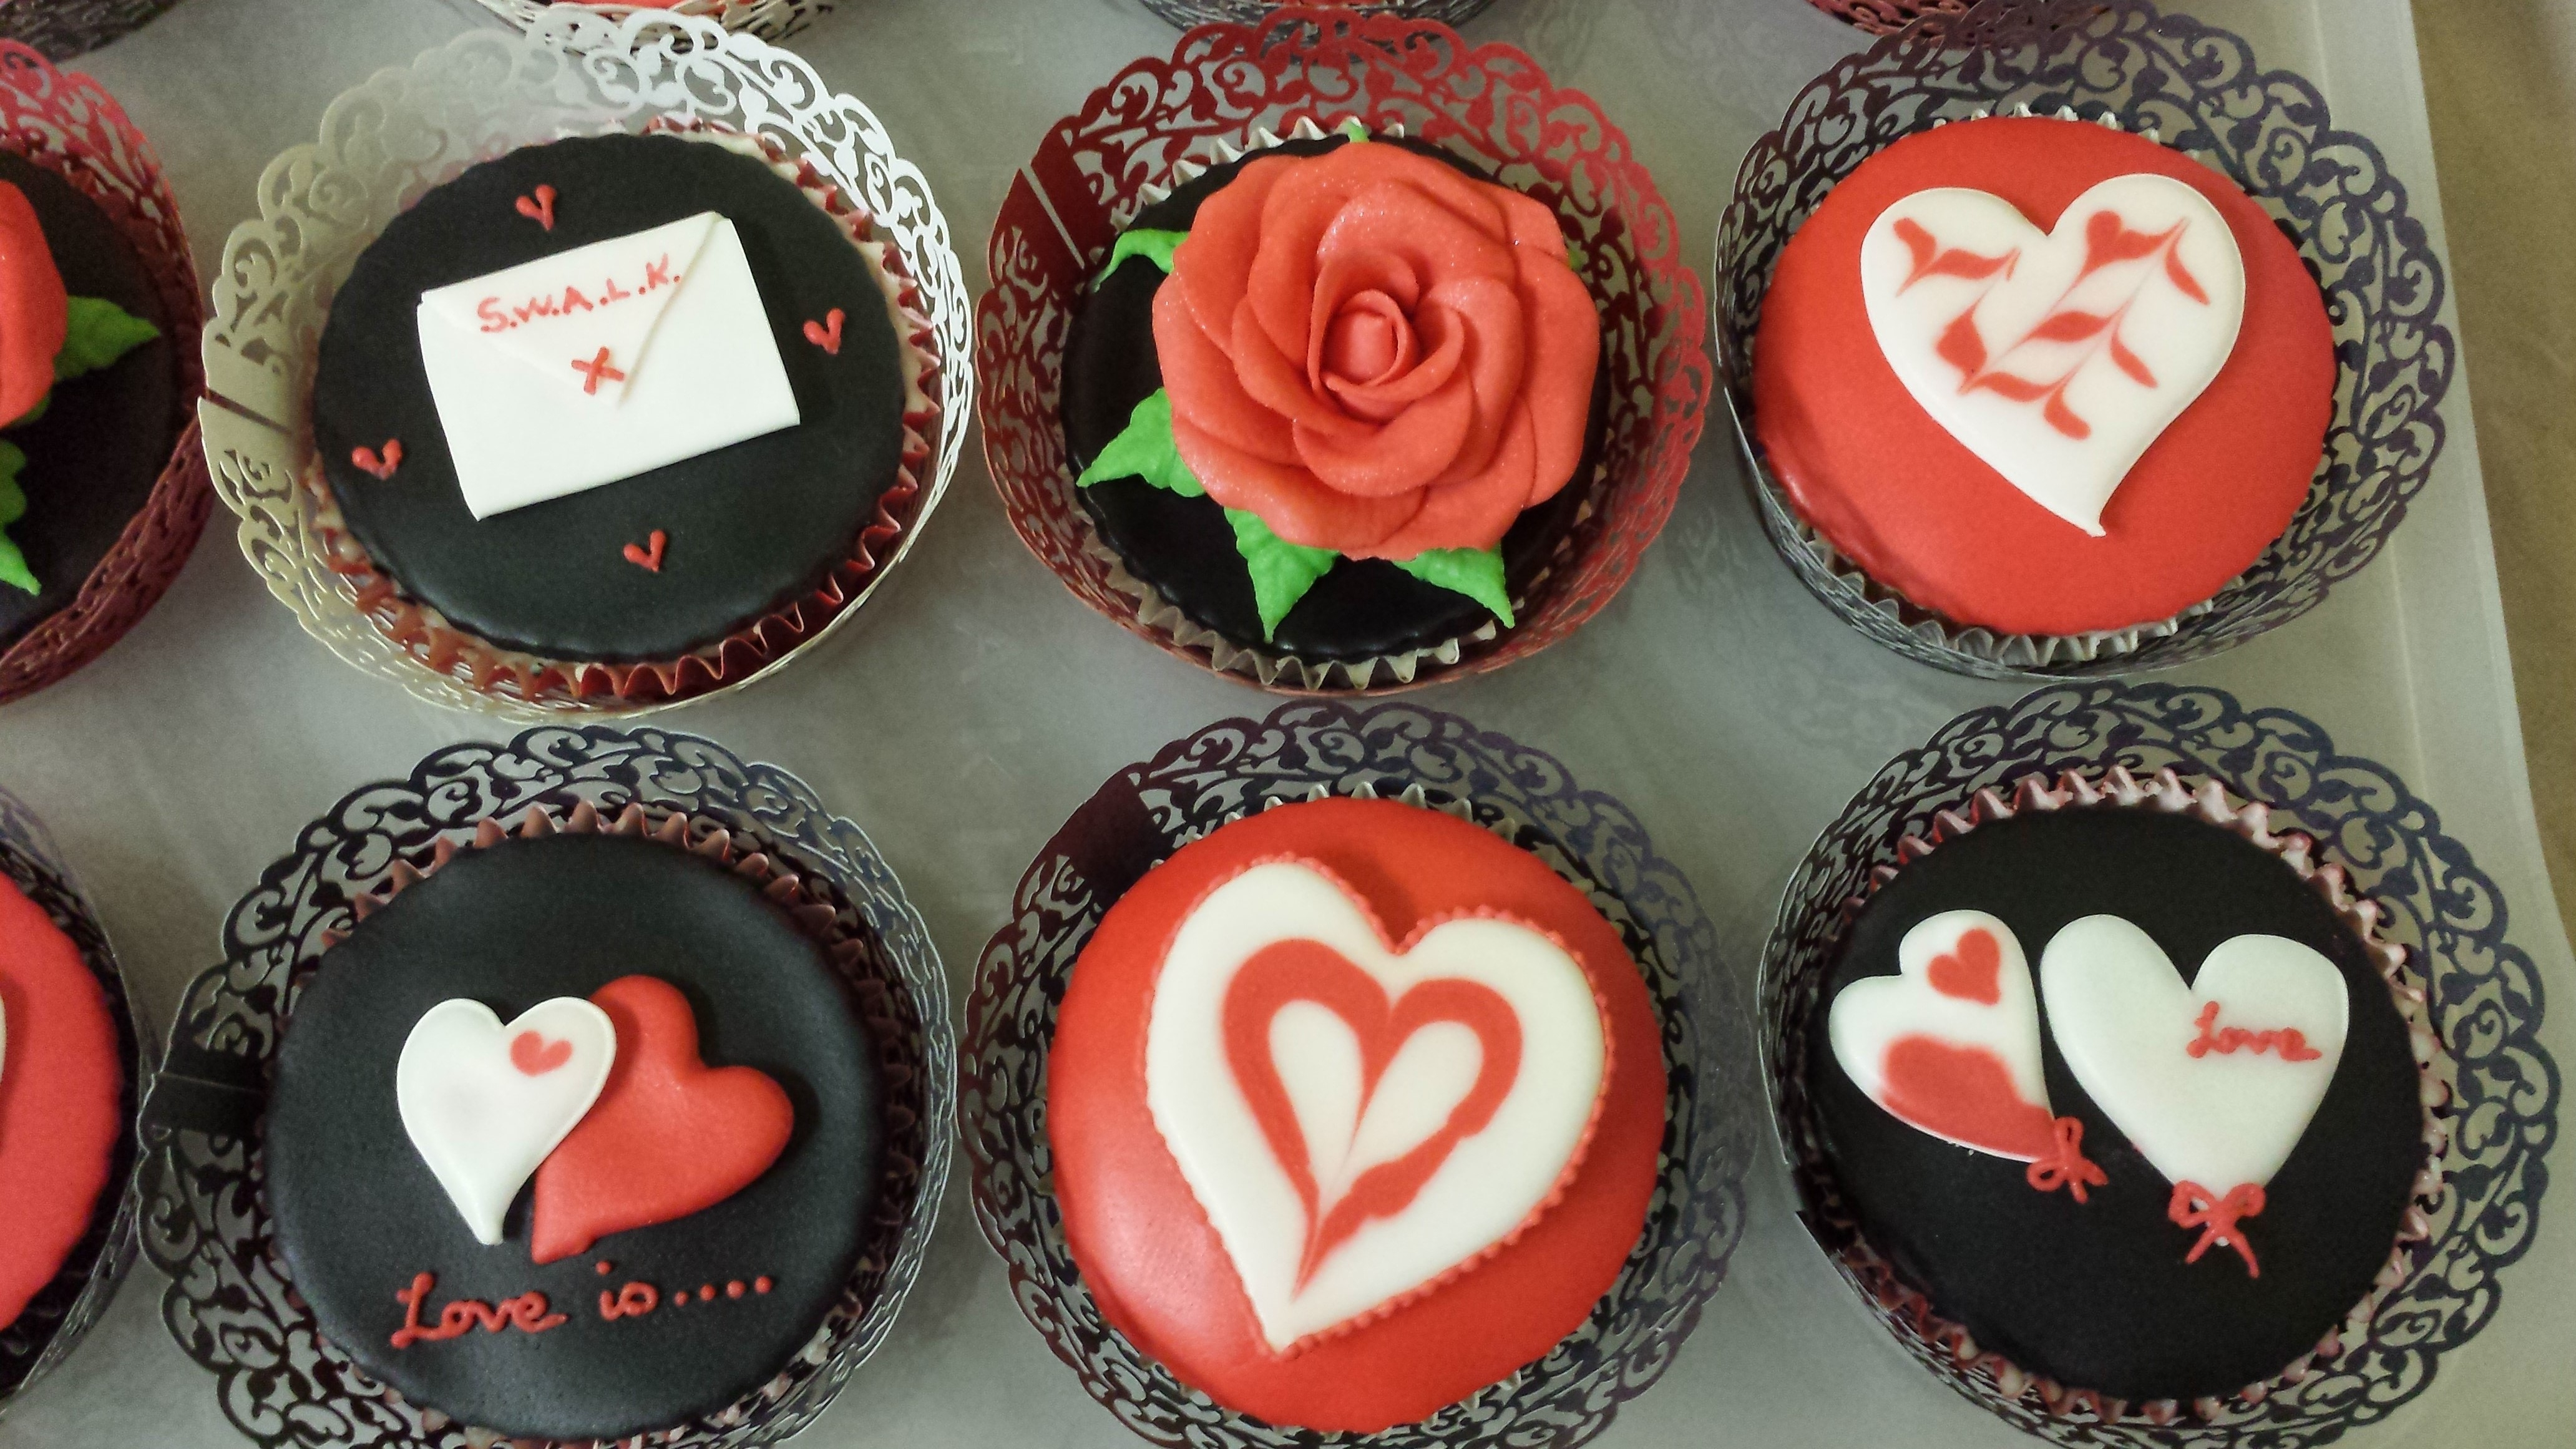 Valentine Cup Cakes Modelling Paste Roses And Royal Icing Hearts Valentine cup cakes, modelling paste roses and Royal Icing hearts.